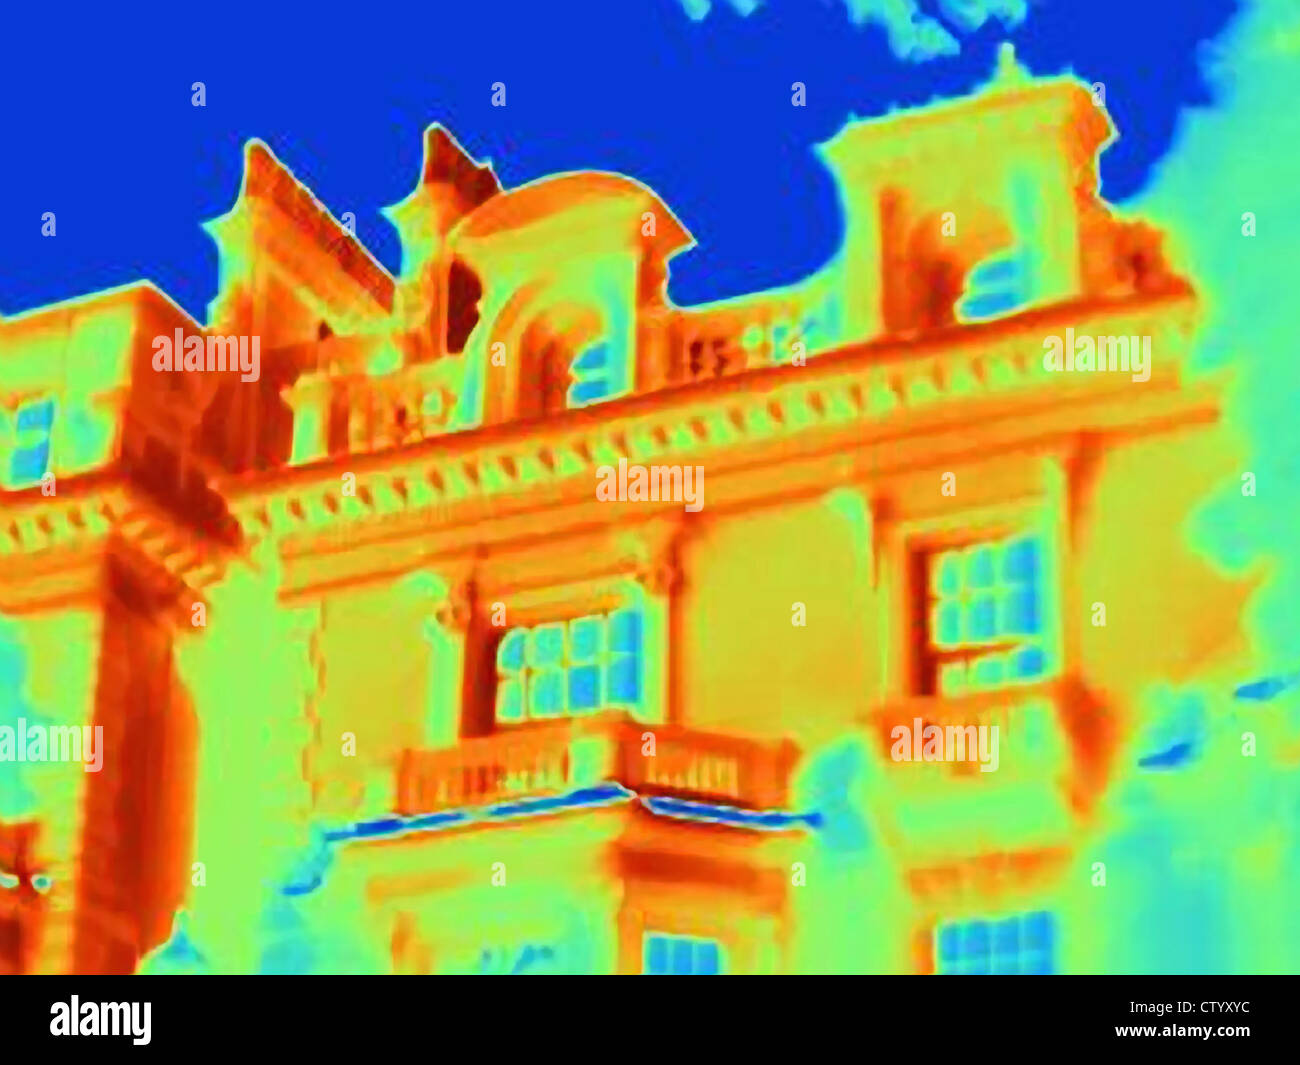 Thermal image of ornate building - Stock Image